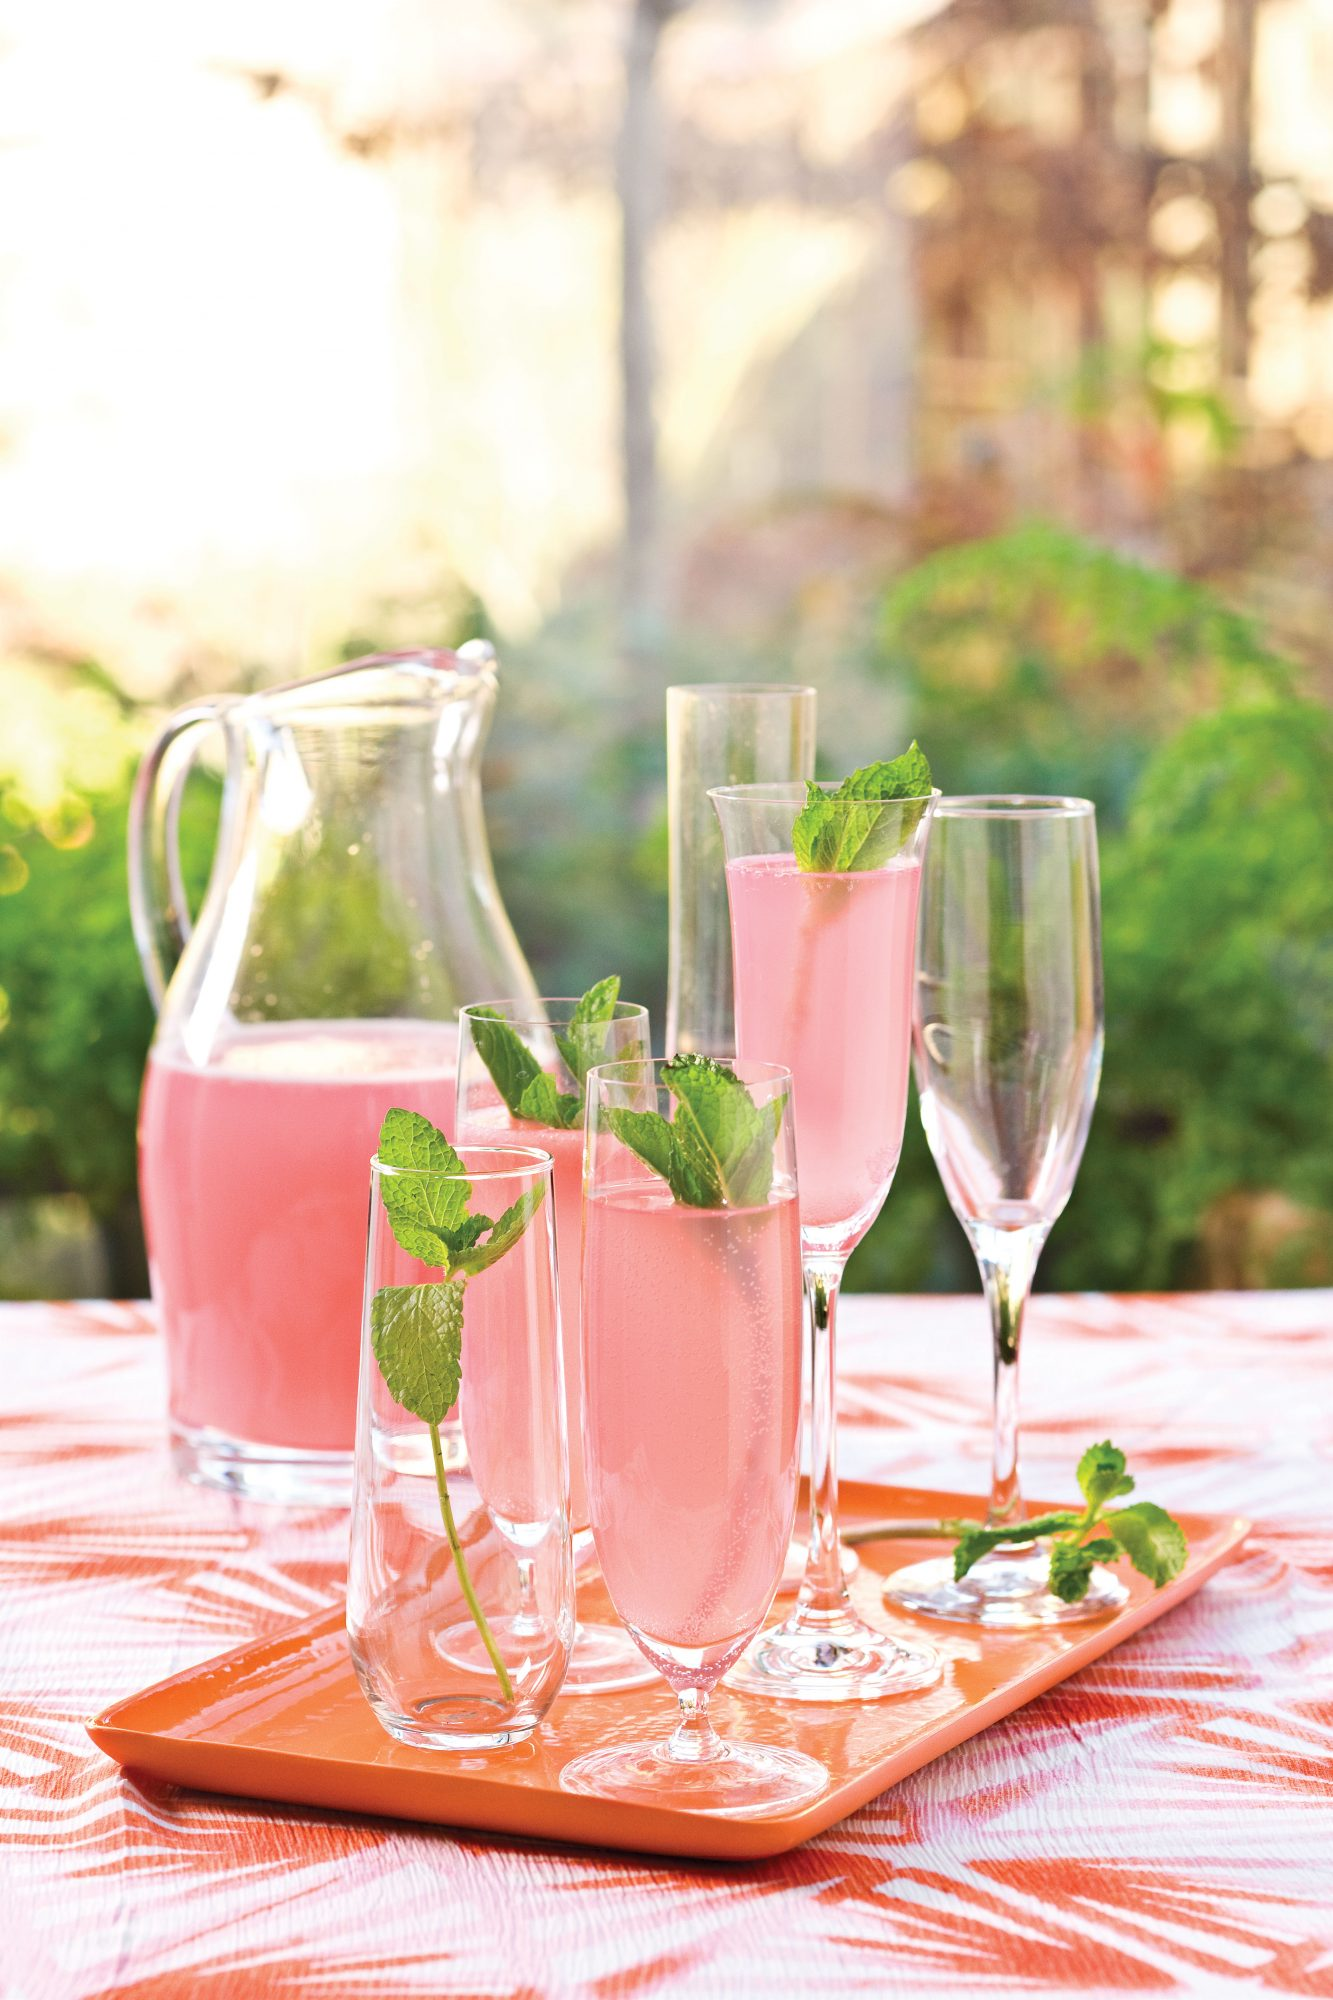 Wedding Bridal Shower Ideas: Cool Beverages